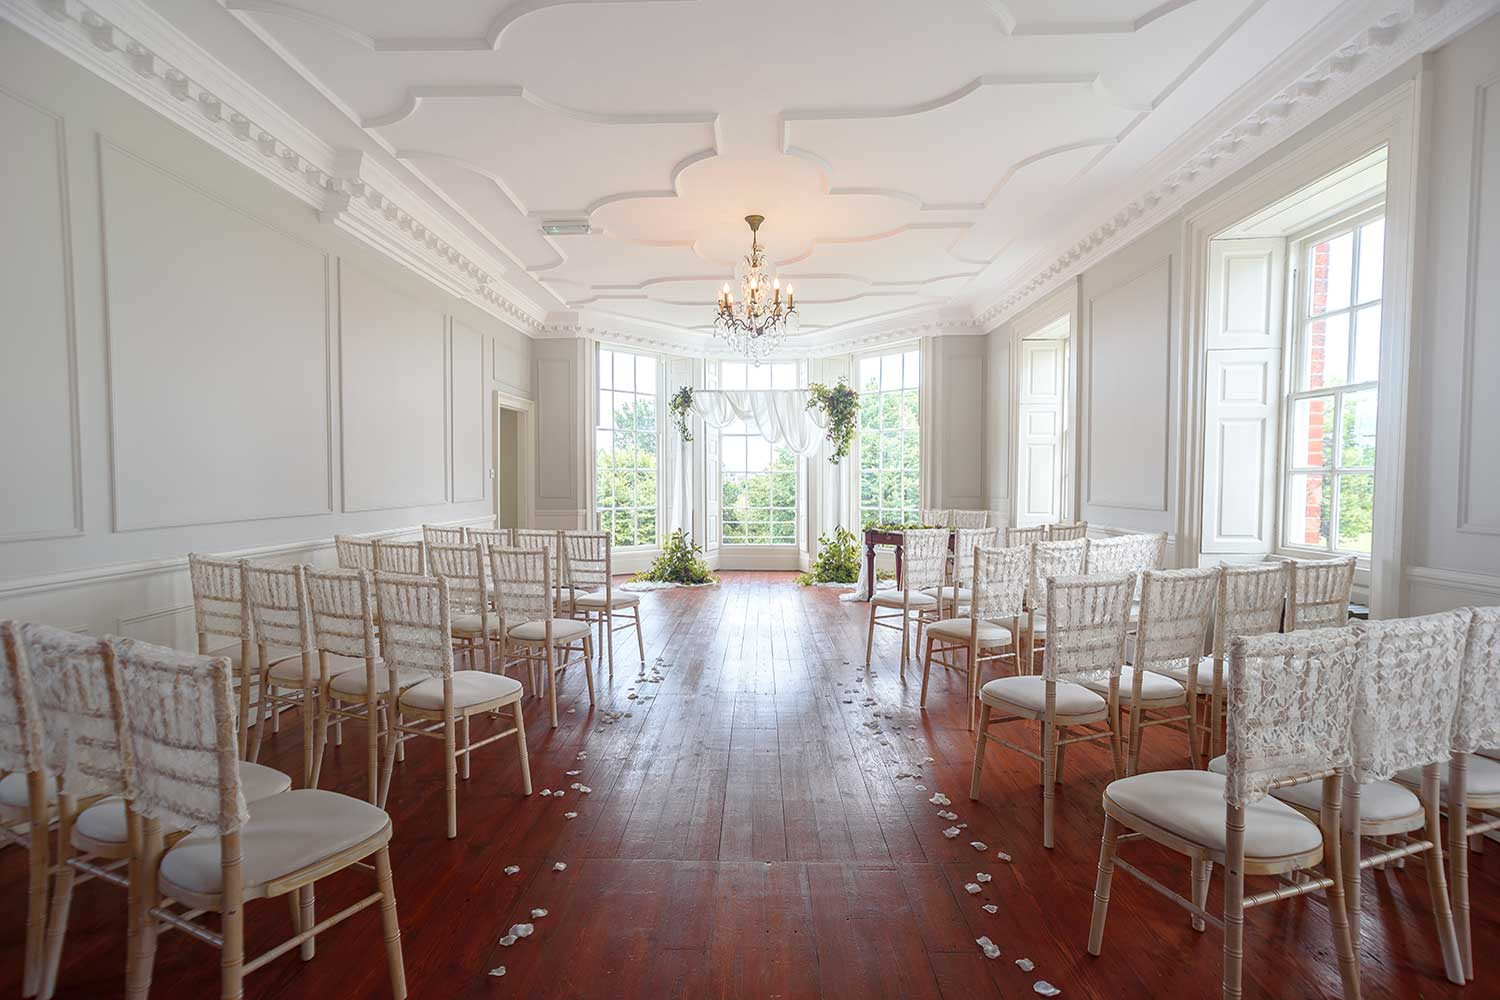 image of long gallery with chairs at gildredge manor